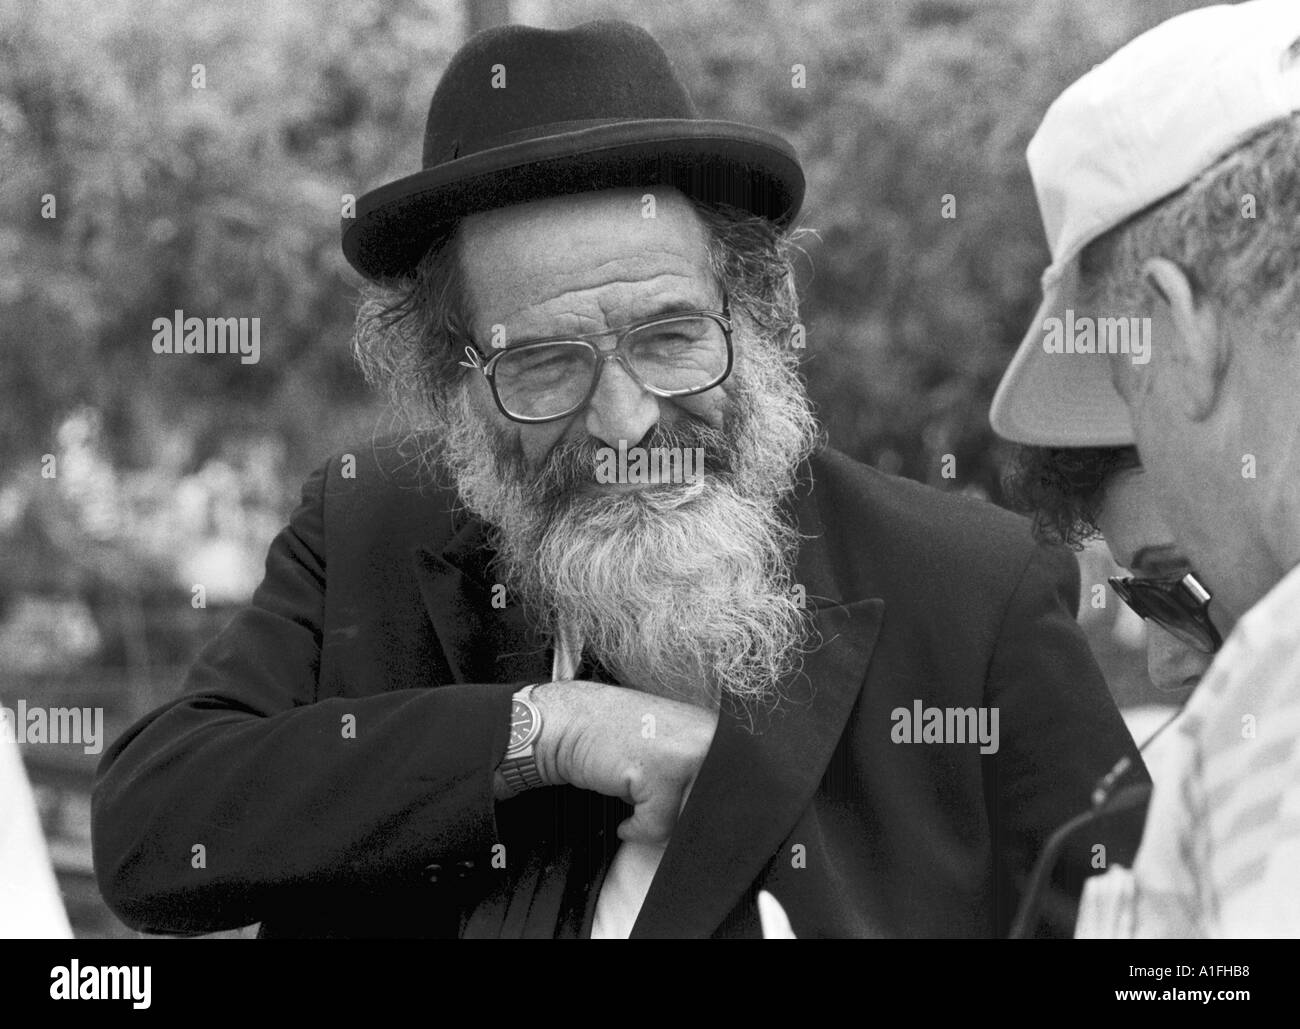 Homburg Hat High Resolution Stock Photography And Images Alamy 1894, in the meaning defined above. https www alamy com old man in dark suit with beard and homburg hat putting hand in inside image3343799 html